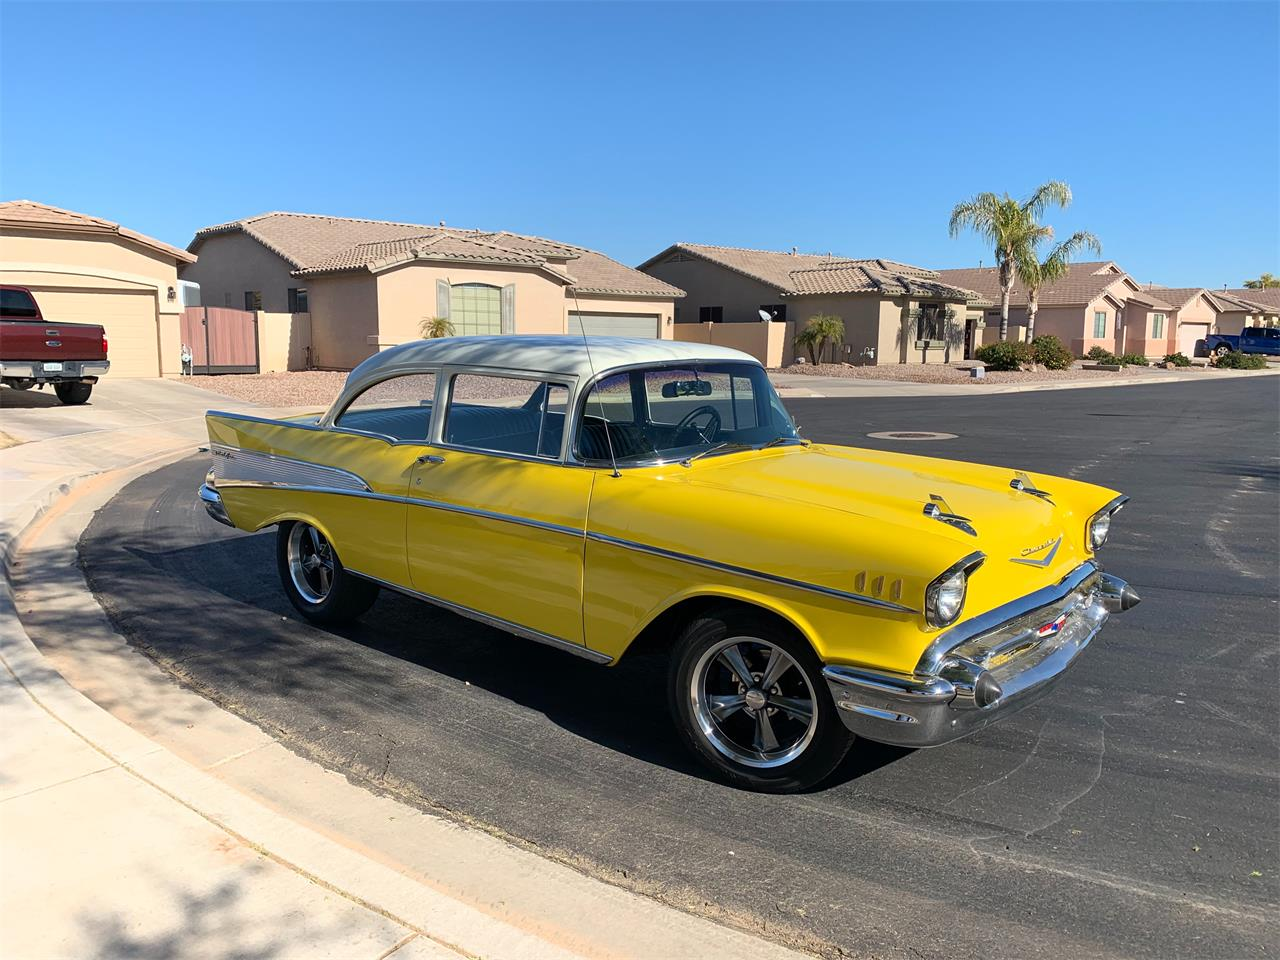 1957 Chevrolet Bel Air (CC-1312847) for sale in Chandler, Arizona